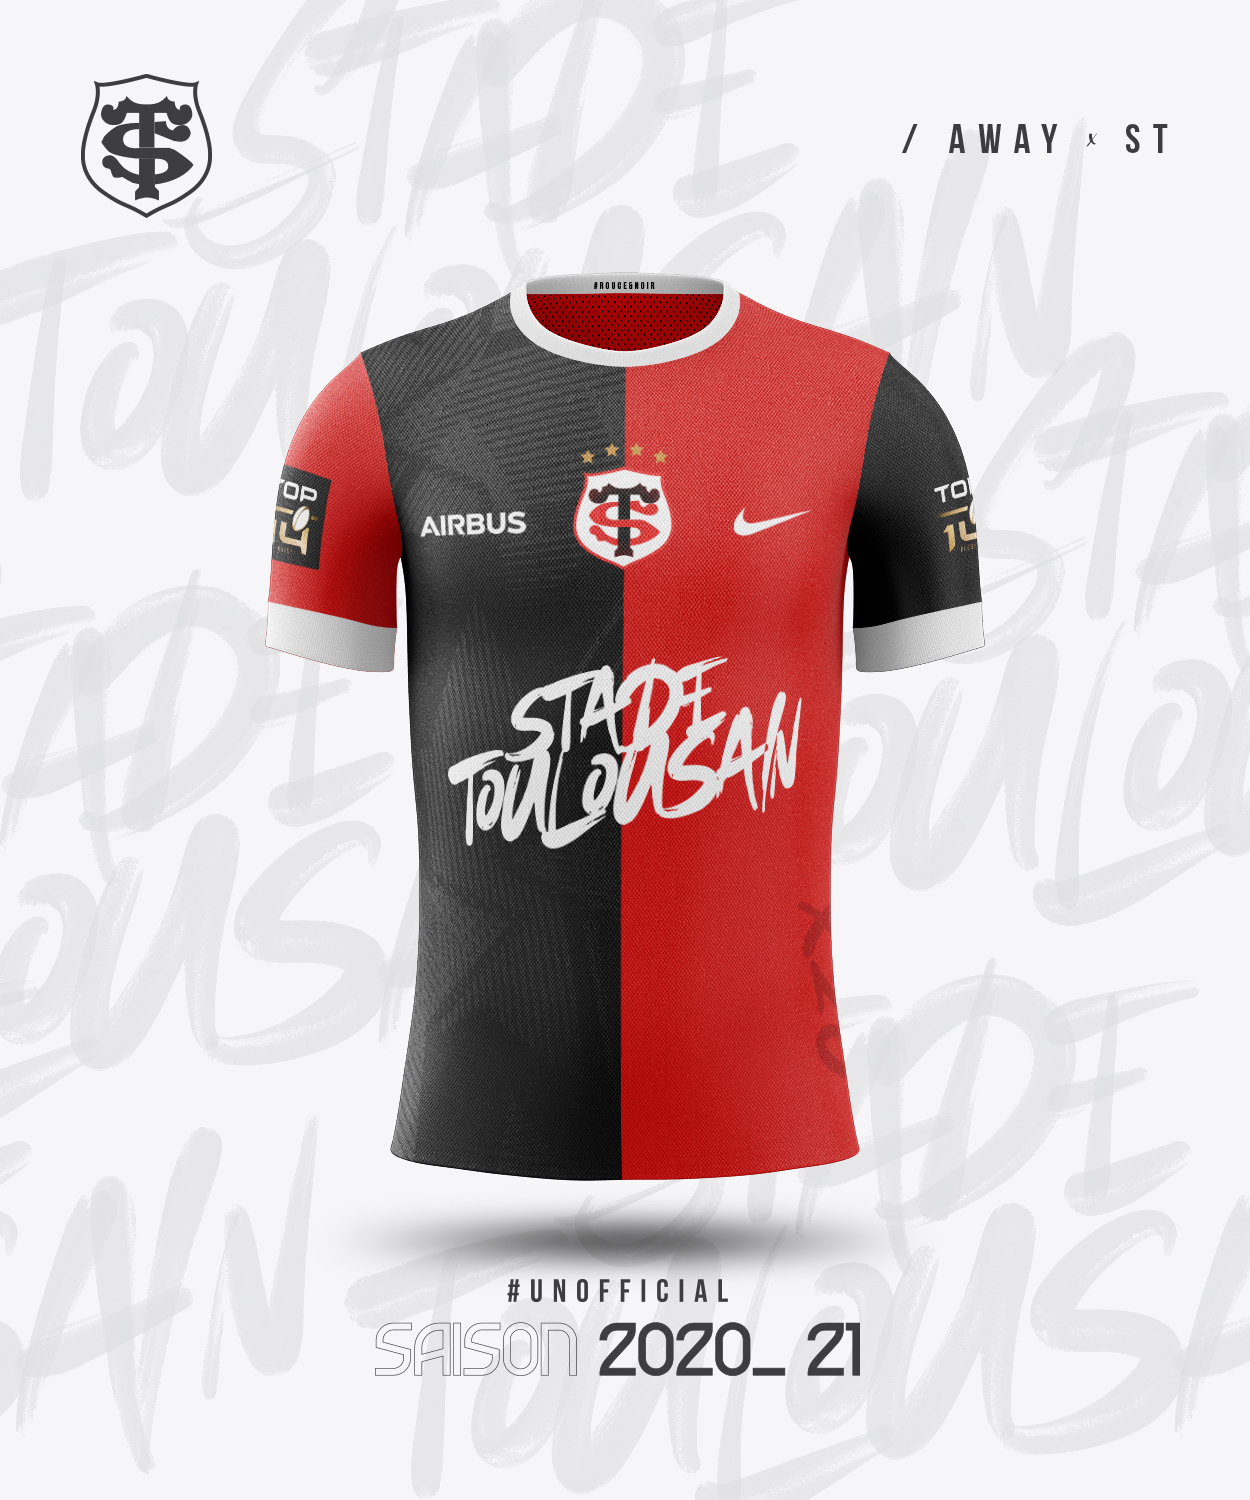 Maillot Away ST 2020-21